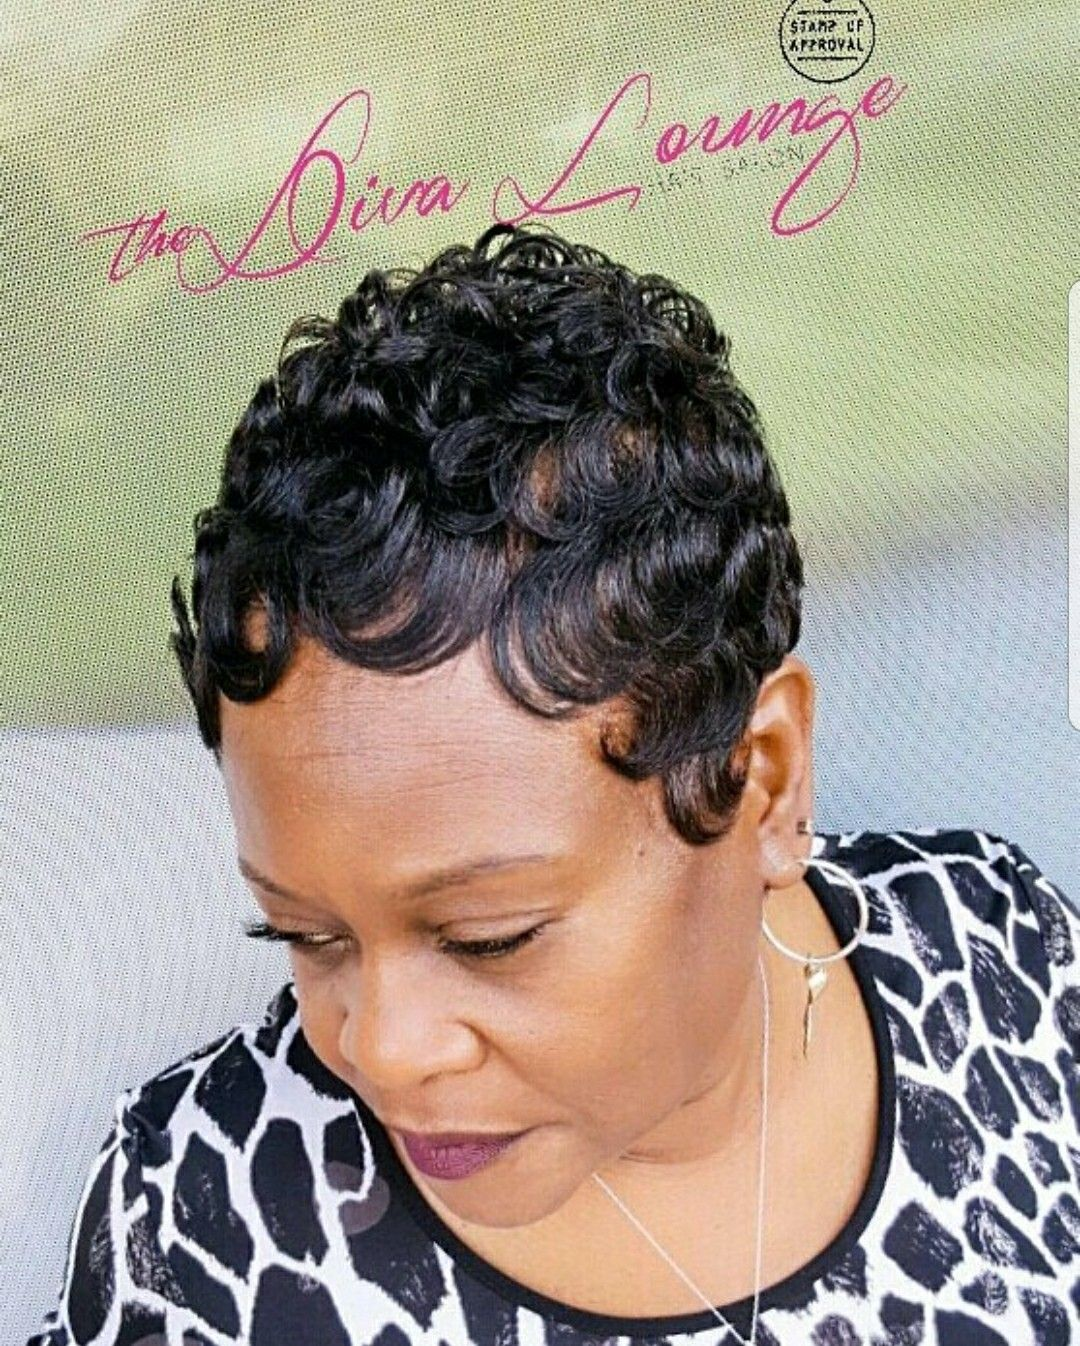 The Diva Lounge Hair Salon Larnetta Moncrief Montgomery Alabama Short Hair Styles Pixie Short Sassy Hair Short Hair Styles